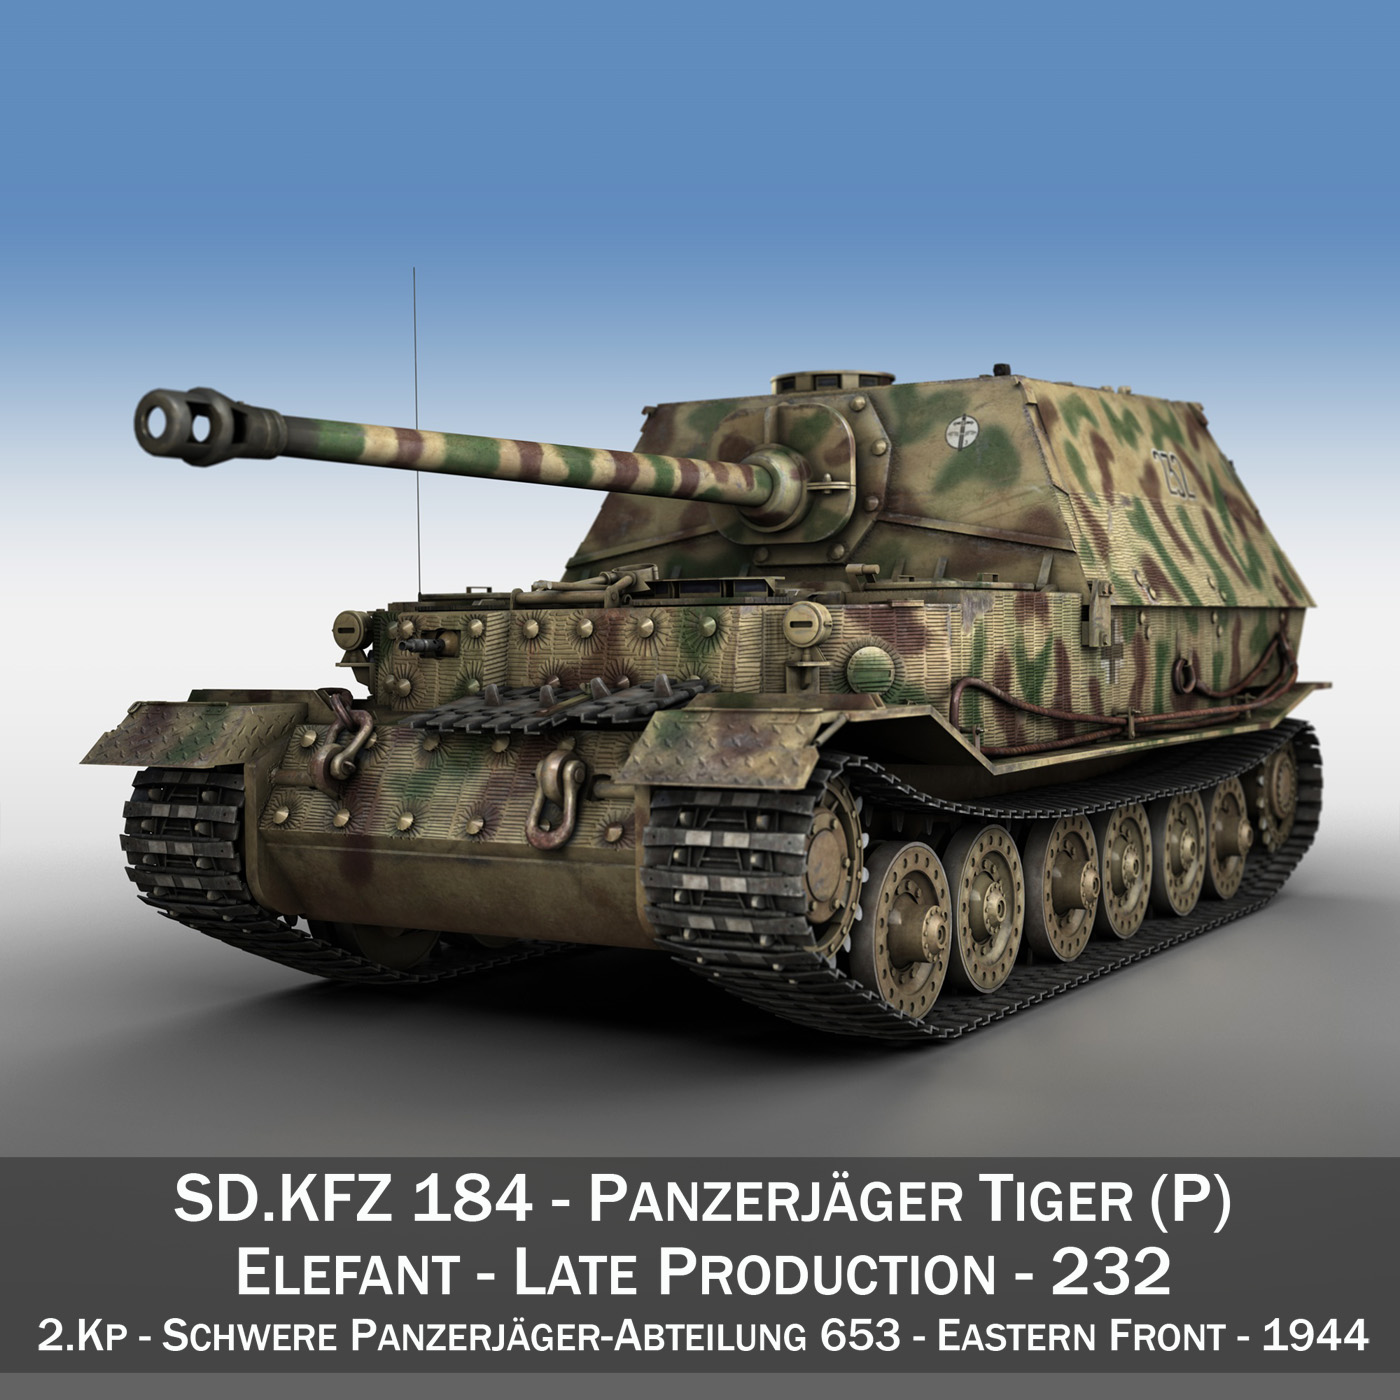 Elefant Tank destroyer - Tiger (P) - 232 3d model 3ds fbx c4d lwo lws lw obj 293339